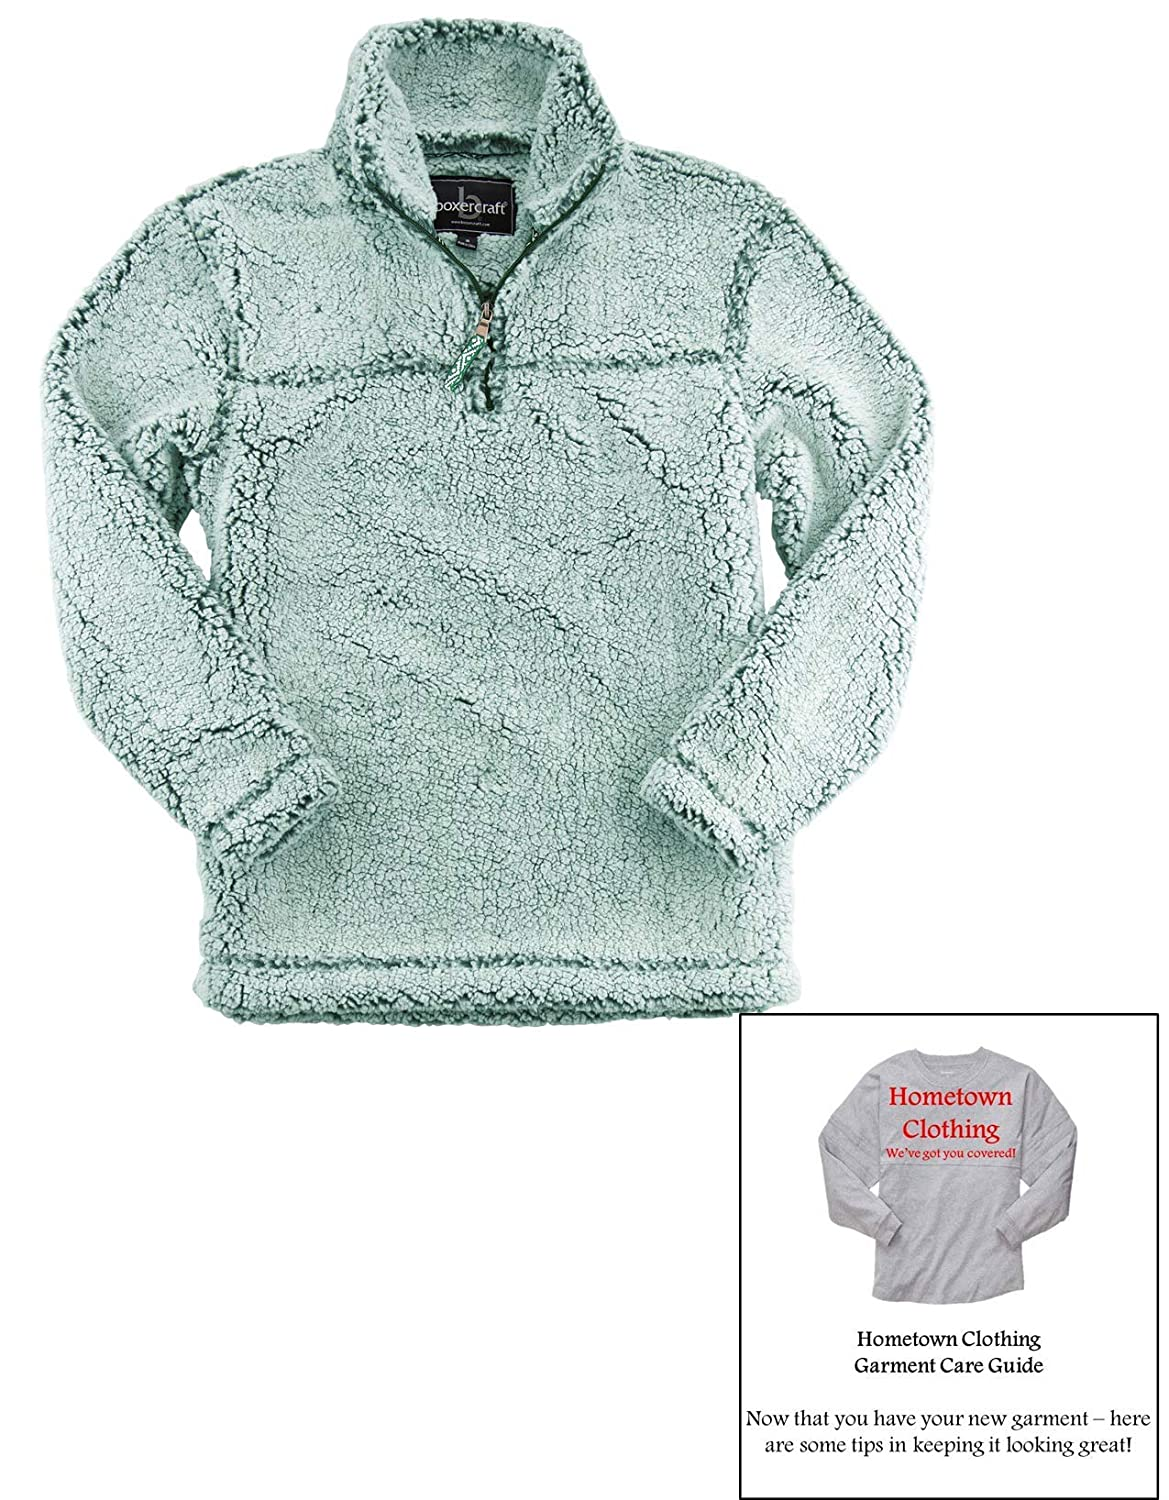 Boxercraft Sherpa Zip Pullover /& HTC Garment Guide Adult Sizes